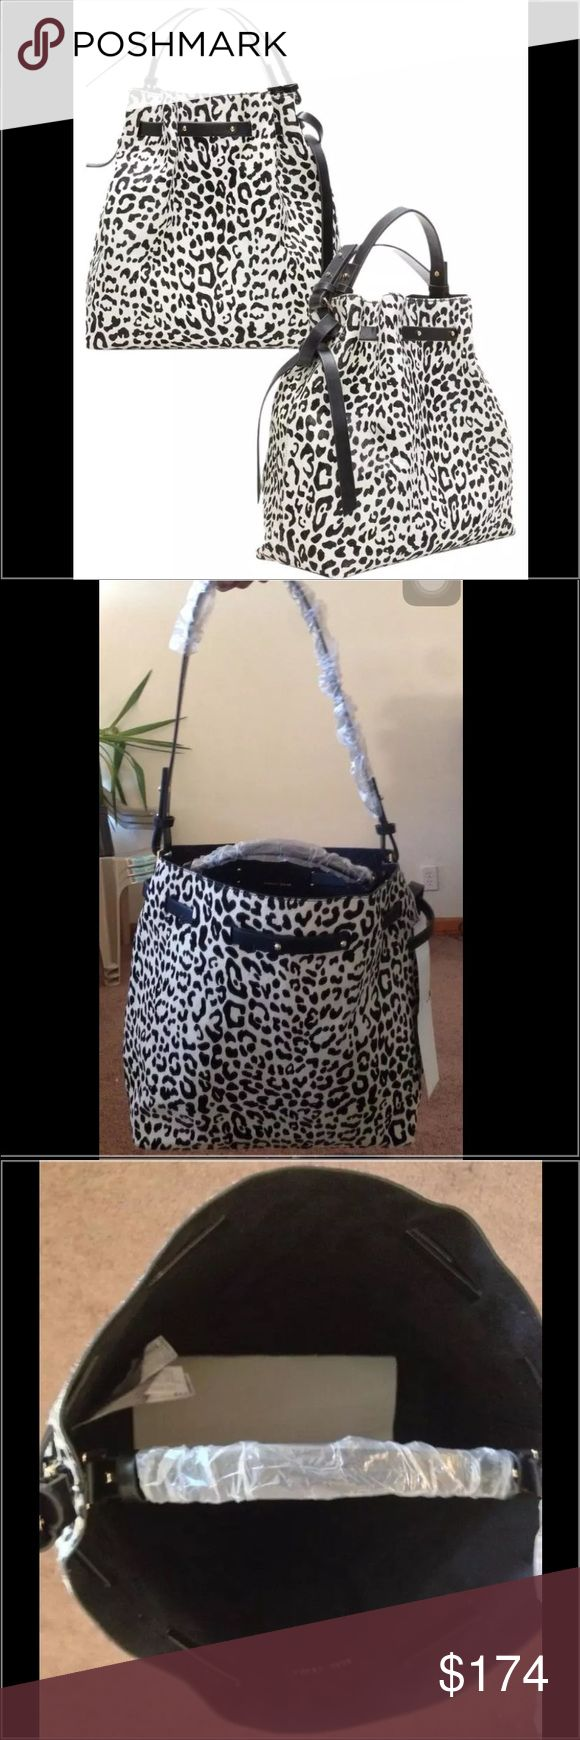 Zara Animal Leopard Print & Leather Large Tote Leopard Animal Print XL Handbag  SOLD OUT Online & In Stores  Bag comes with TWO Strap Options!!!  Composition: Upper  30% POLYURETHANE 70% COW FURSKIN Lining 100% POLYESTER  Bag Measurements:  Height: 13.5 inches Length: 18.5 inches  Bag Depth : 12 inches  Strap Drop option #1: 12 inches  Strap Drop option #2: 3.5 inches Zara Bags Totes